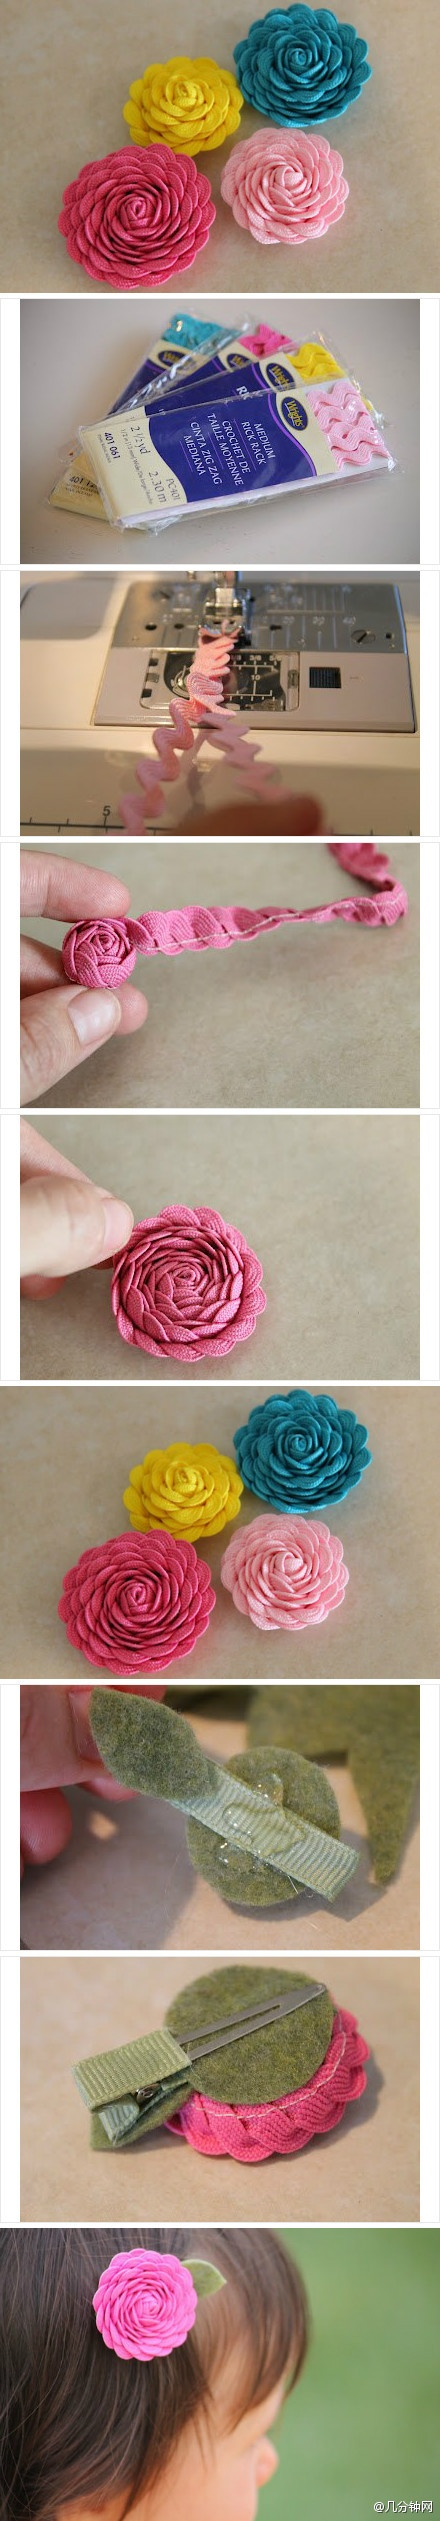 7 Popular DIY Tutorials